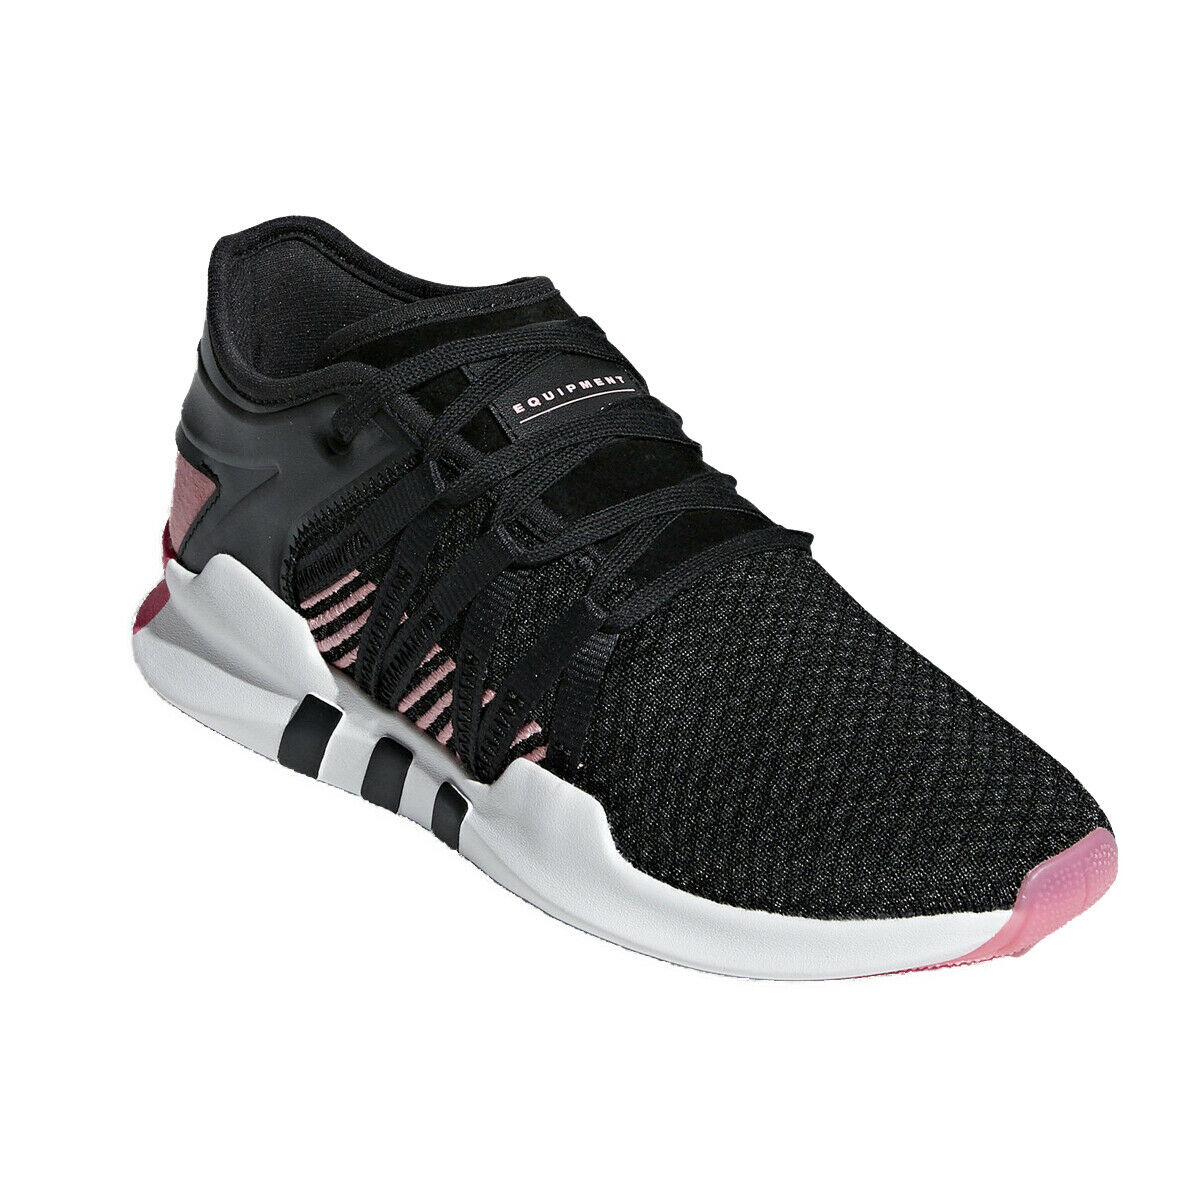 55743e062b3f ADIDAS WOMEN S ORIGINALS EQT ADV RACING SHOES B37092 CORE BLACK BLACK BLACK  CORE BLACK PINK 9d736b